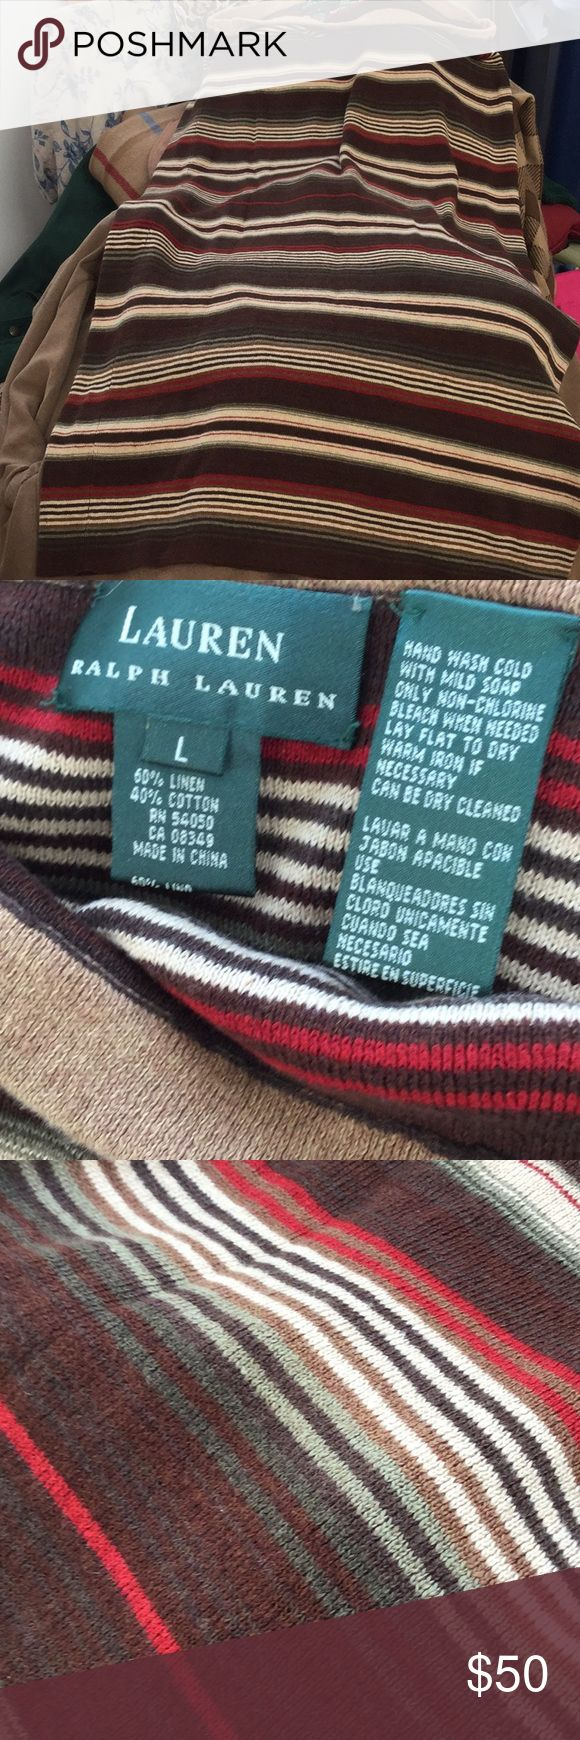 RL winter tube skirt, L Really nice Ralph Lauren fall and winter colors in a knit straight long skirt. Linen and cotton. Hand wash. Worn one time. Lauren Ralph Lauren Skirts Maxi